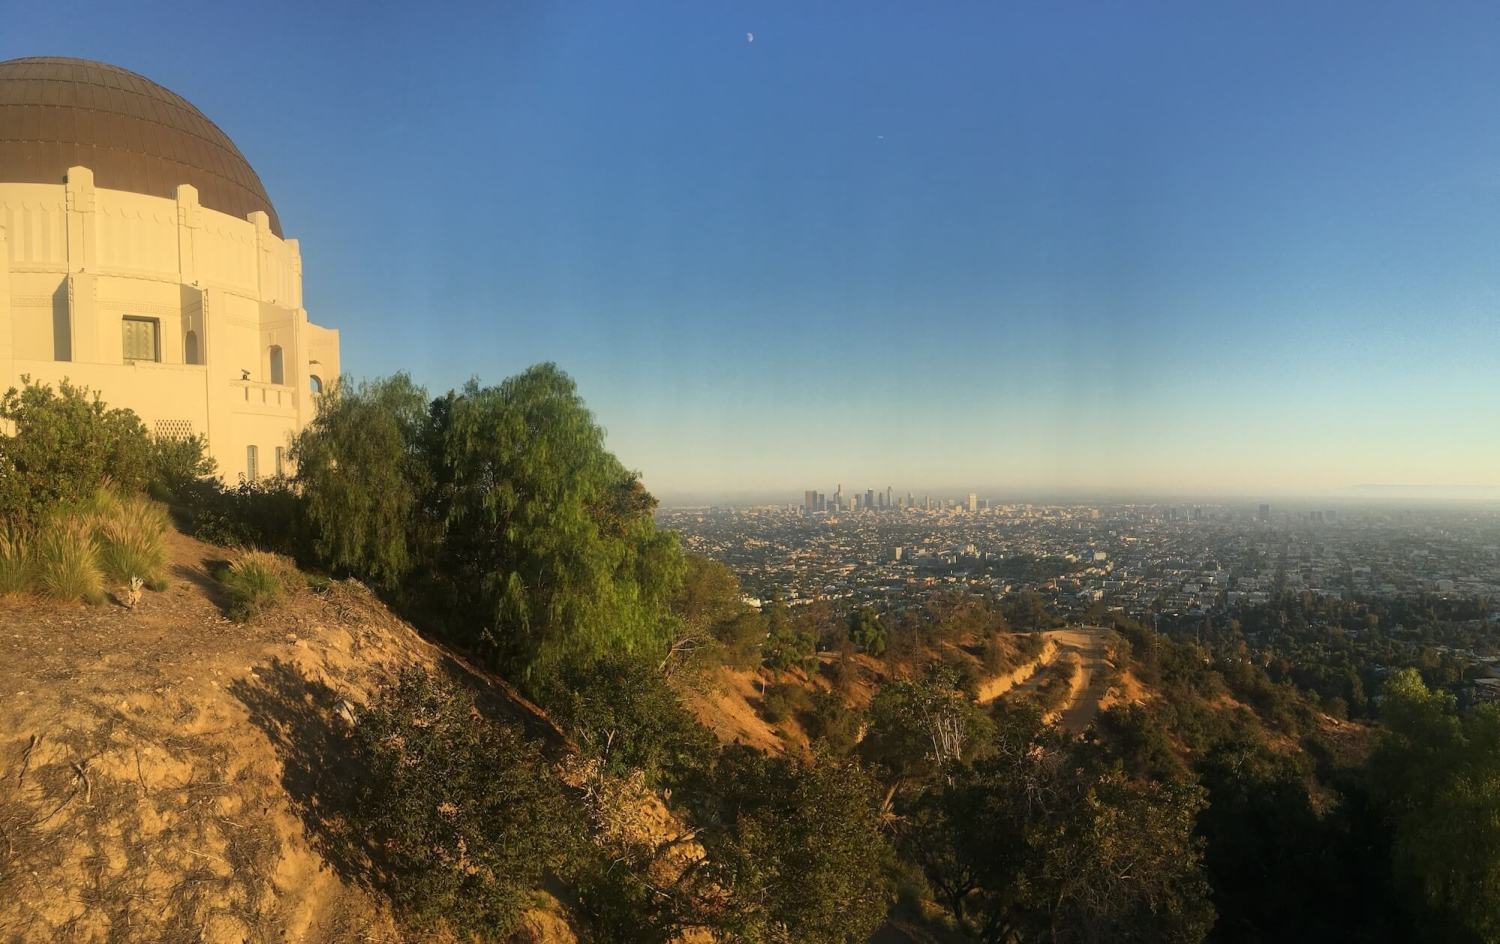 Downtown L.A. Griffith observatory